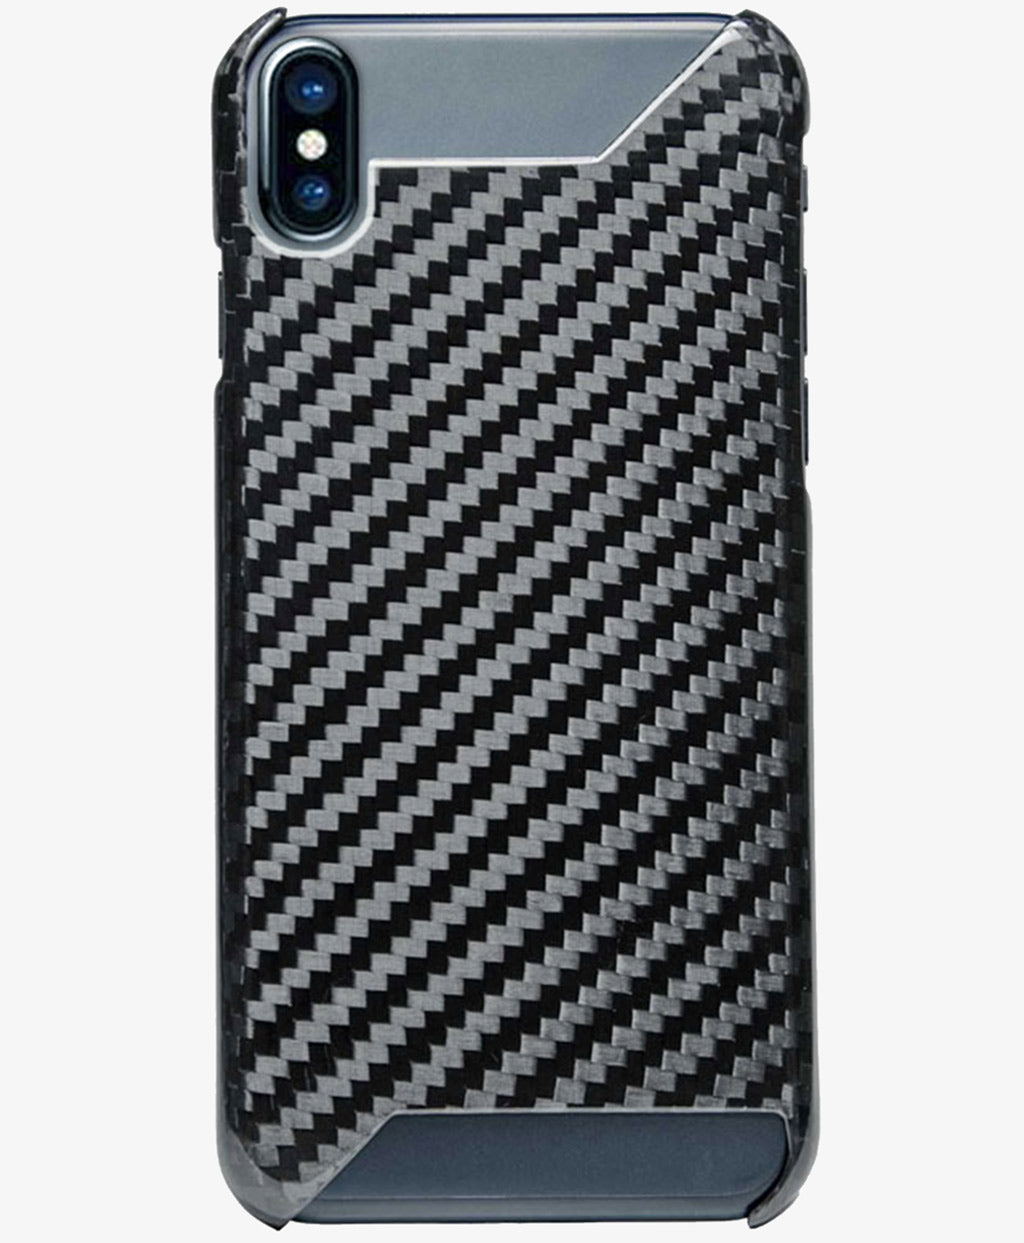 Real carbon fiber case for iPhone X by Carbon Trim Solutions